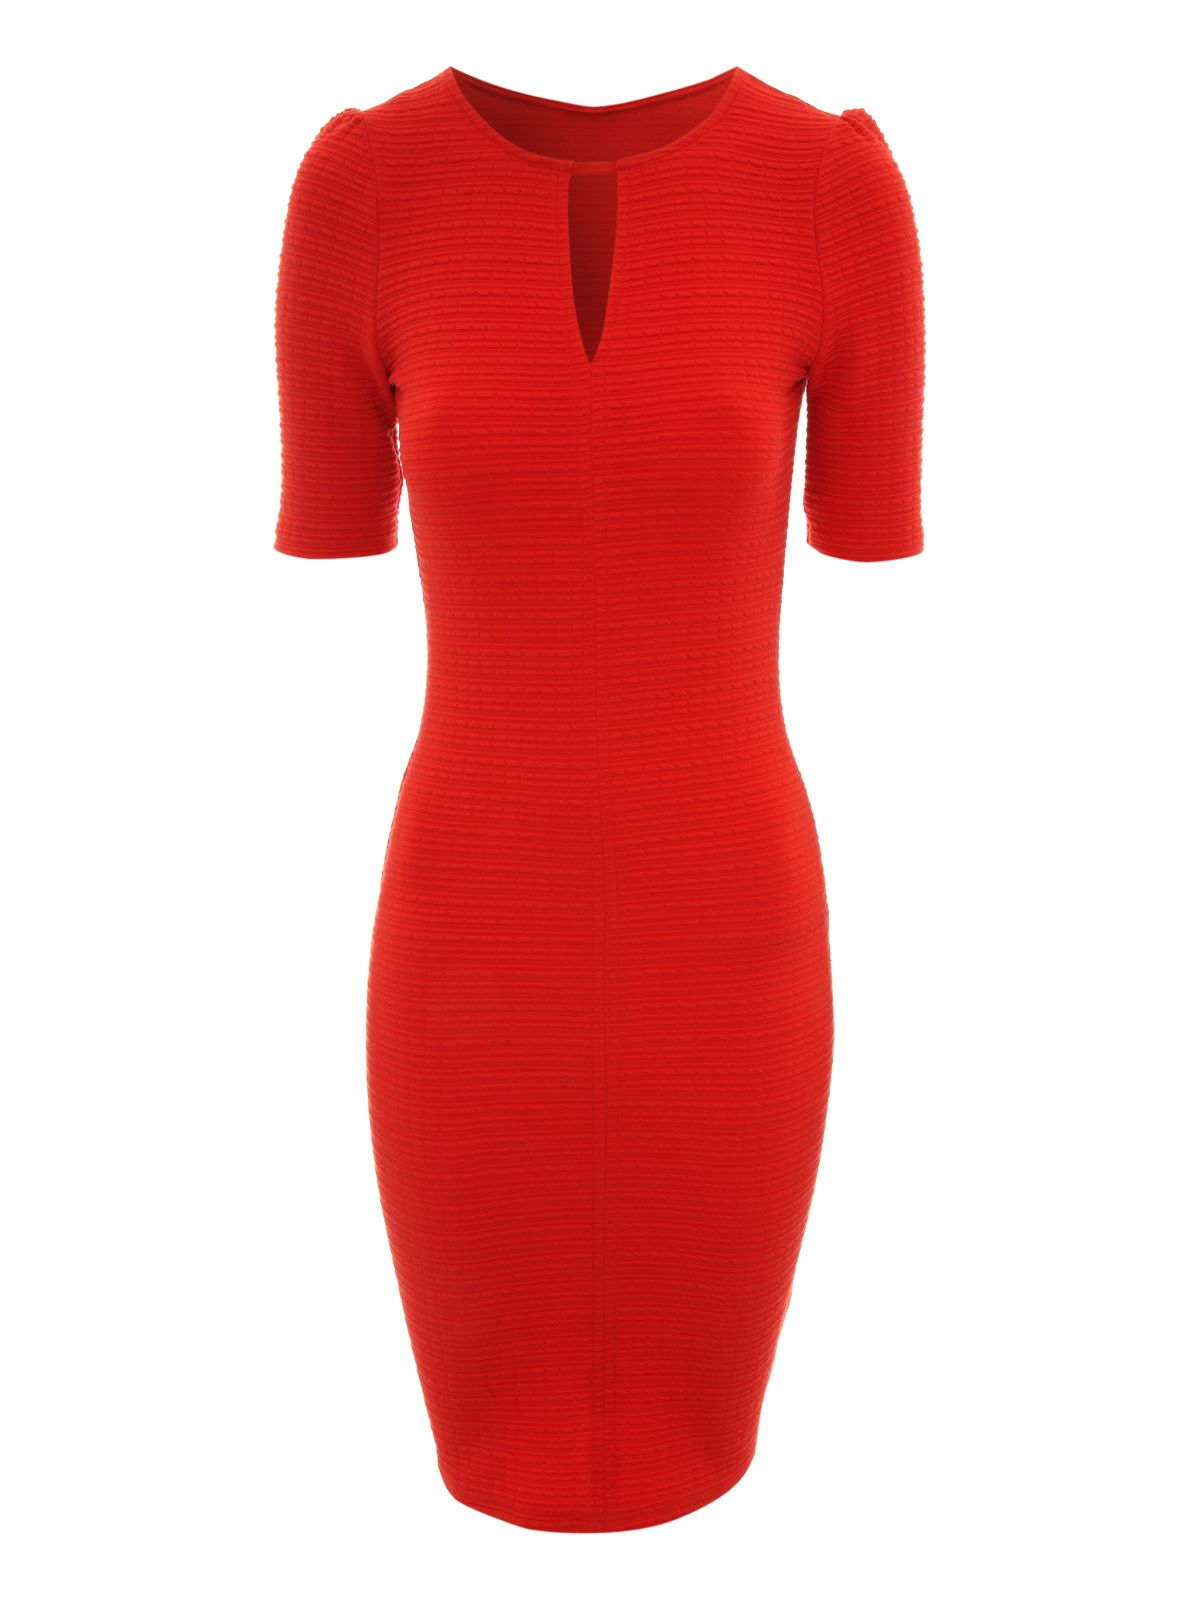 Jane norman Notch Neck Dress in Red | Lyst